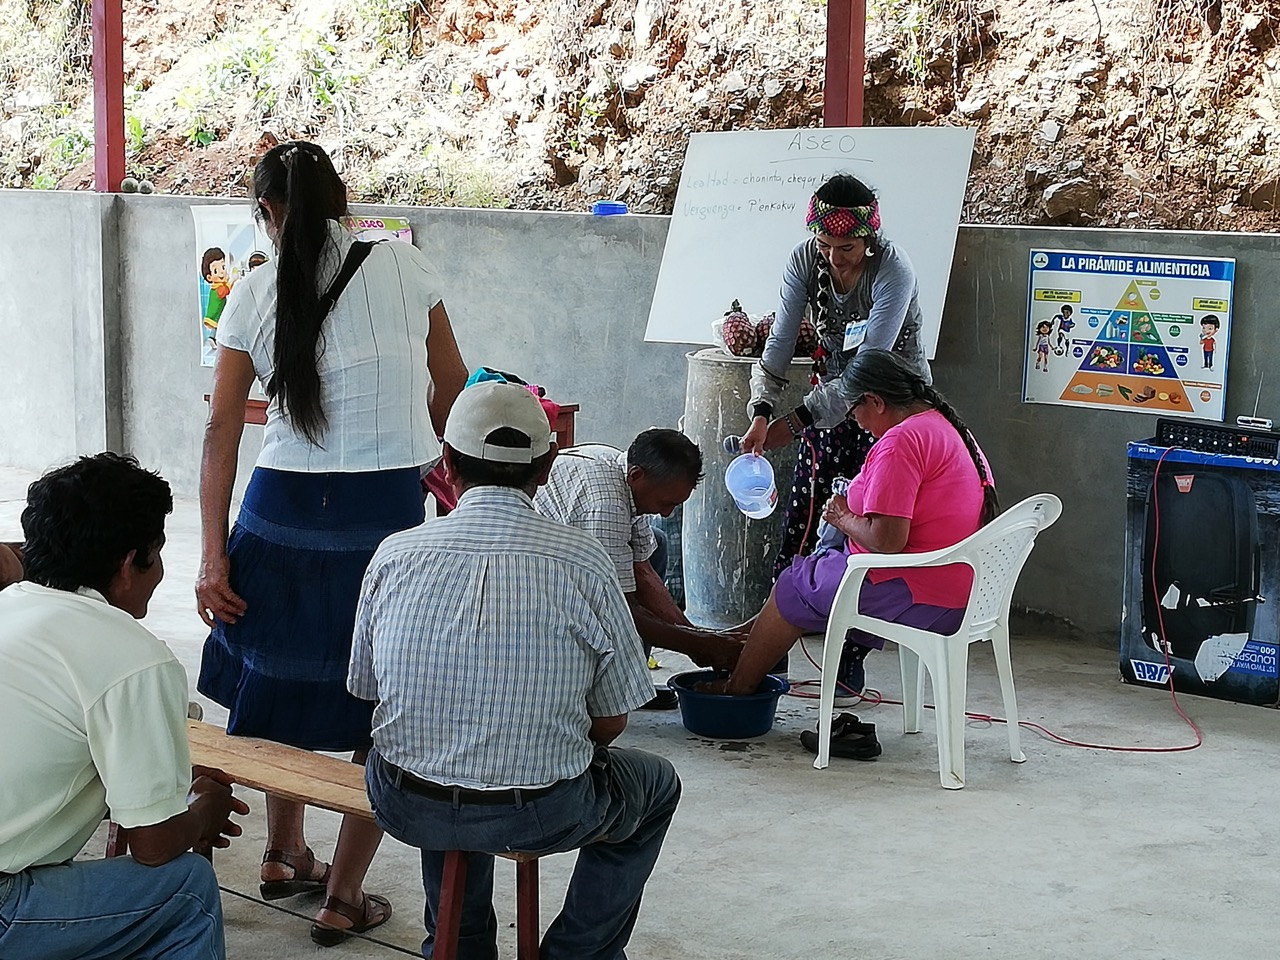 Urpi leads a class for those in the waiting area to learn about, not only hygiene, but humility as well. San Martín, Peru